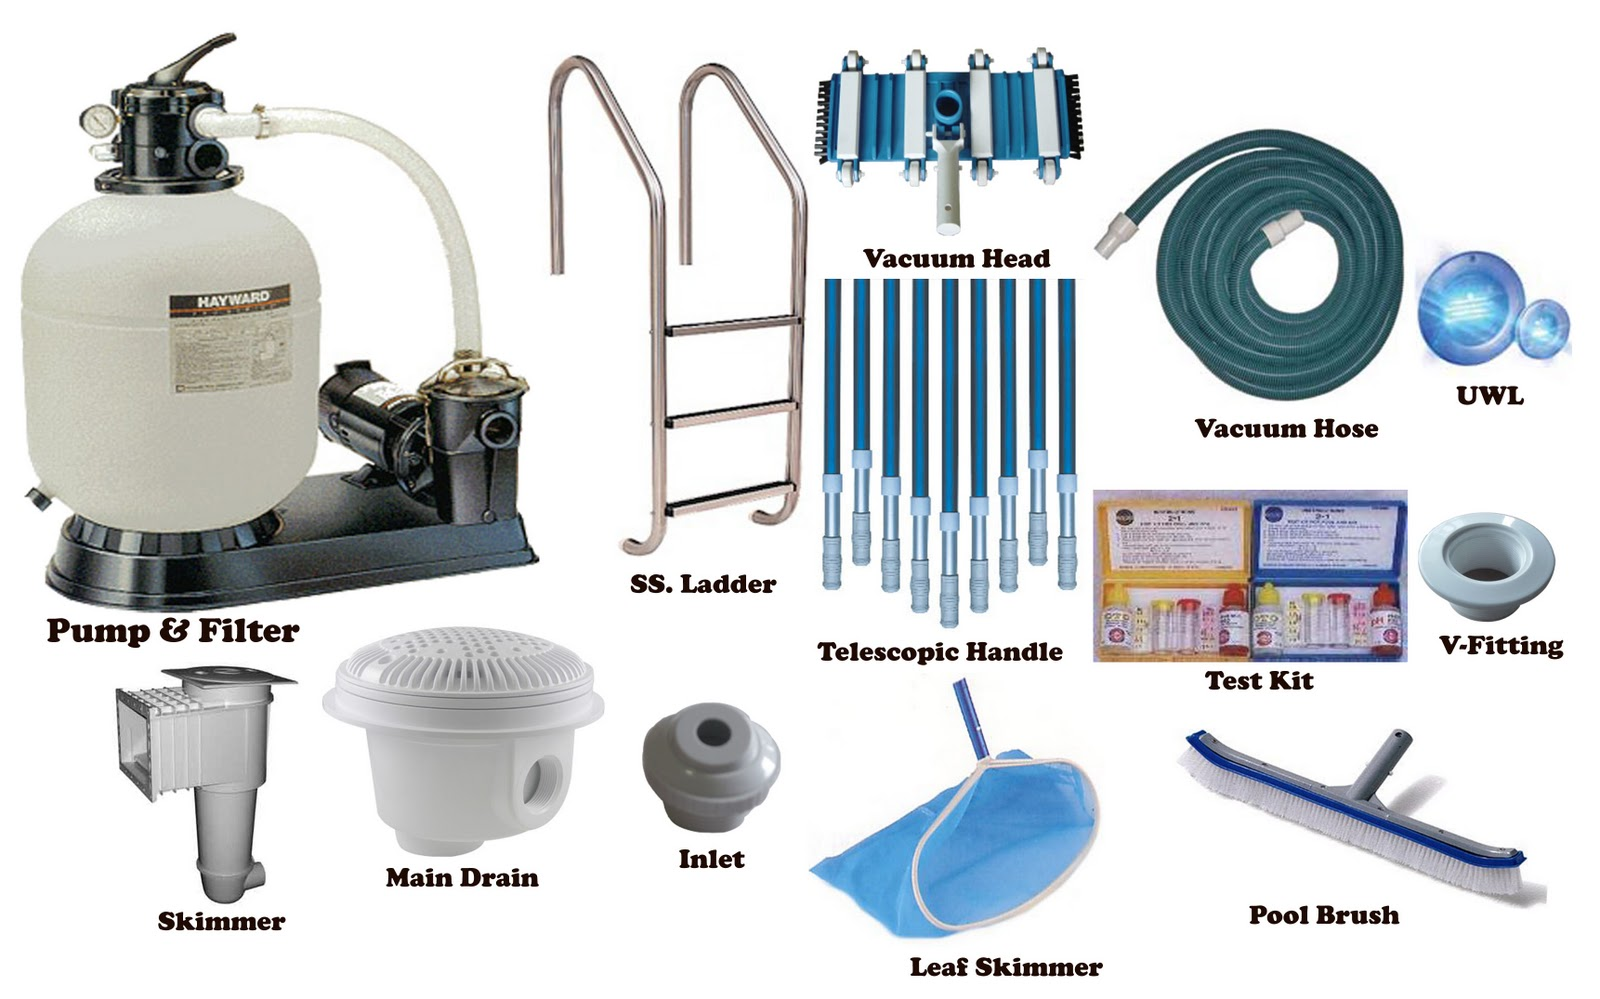 Swimming Pool Treatment Service : Swimming pool filter ozone uv system aquatic solutions